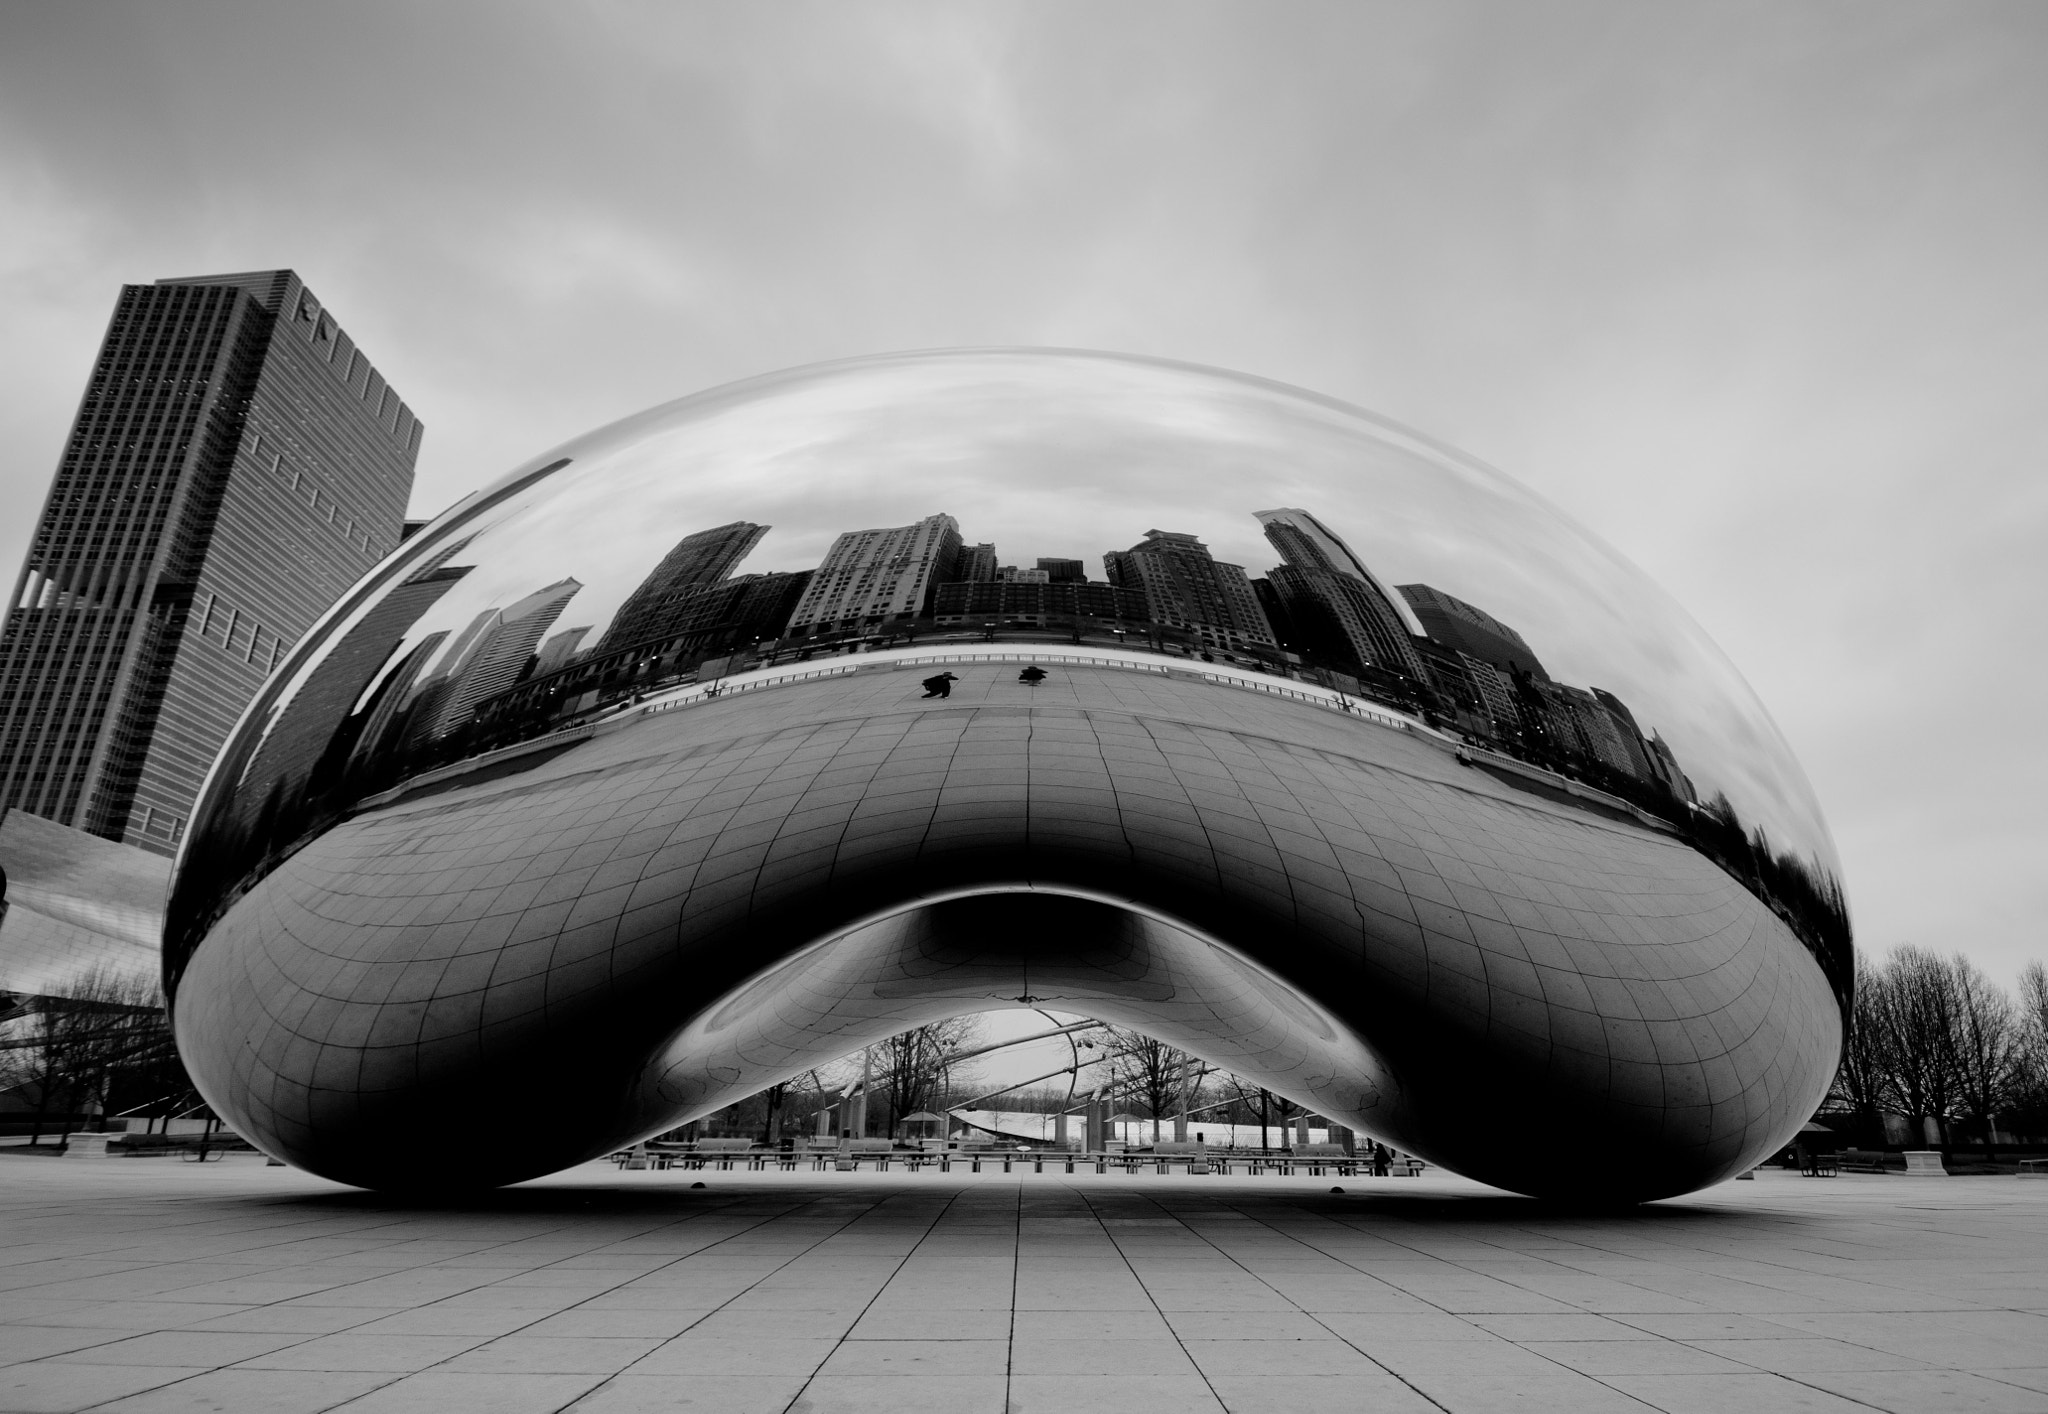 Photograph The Bean by Selena Wang on 500px